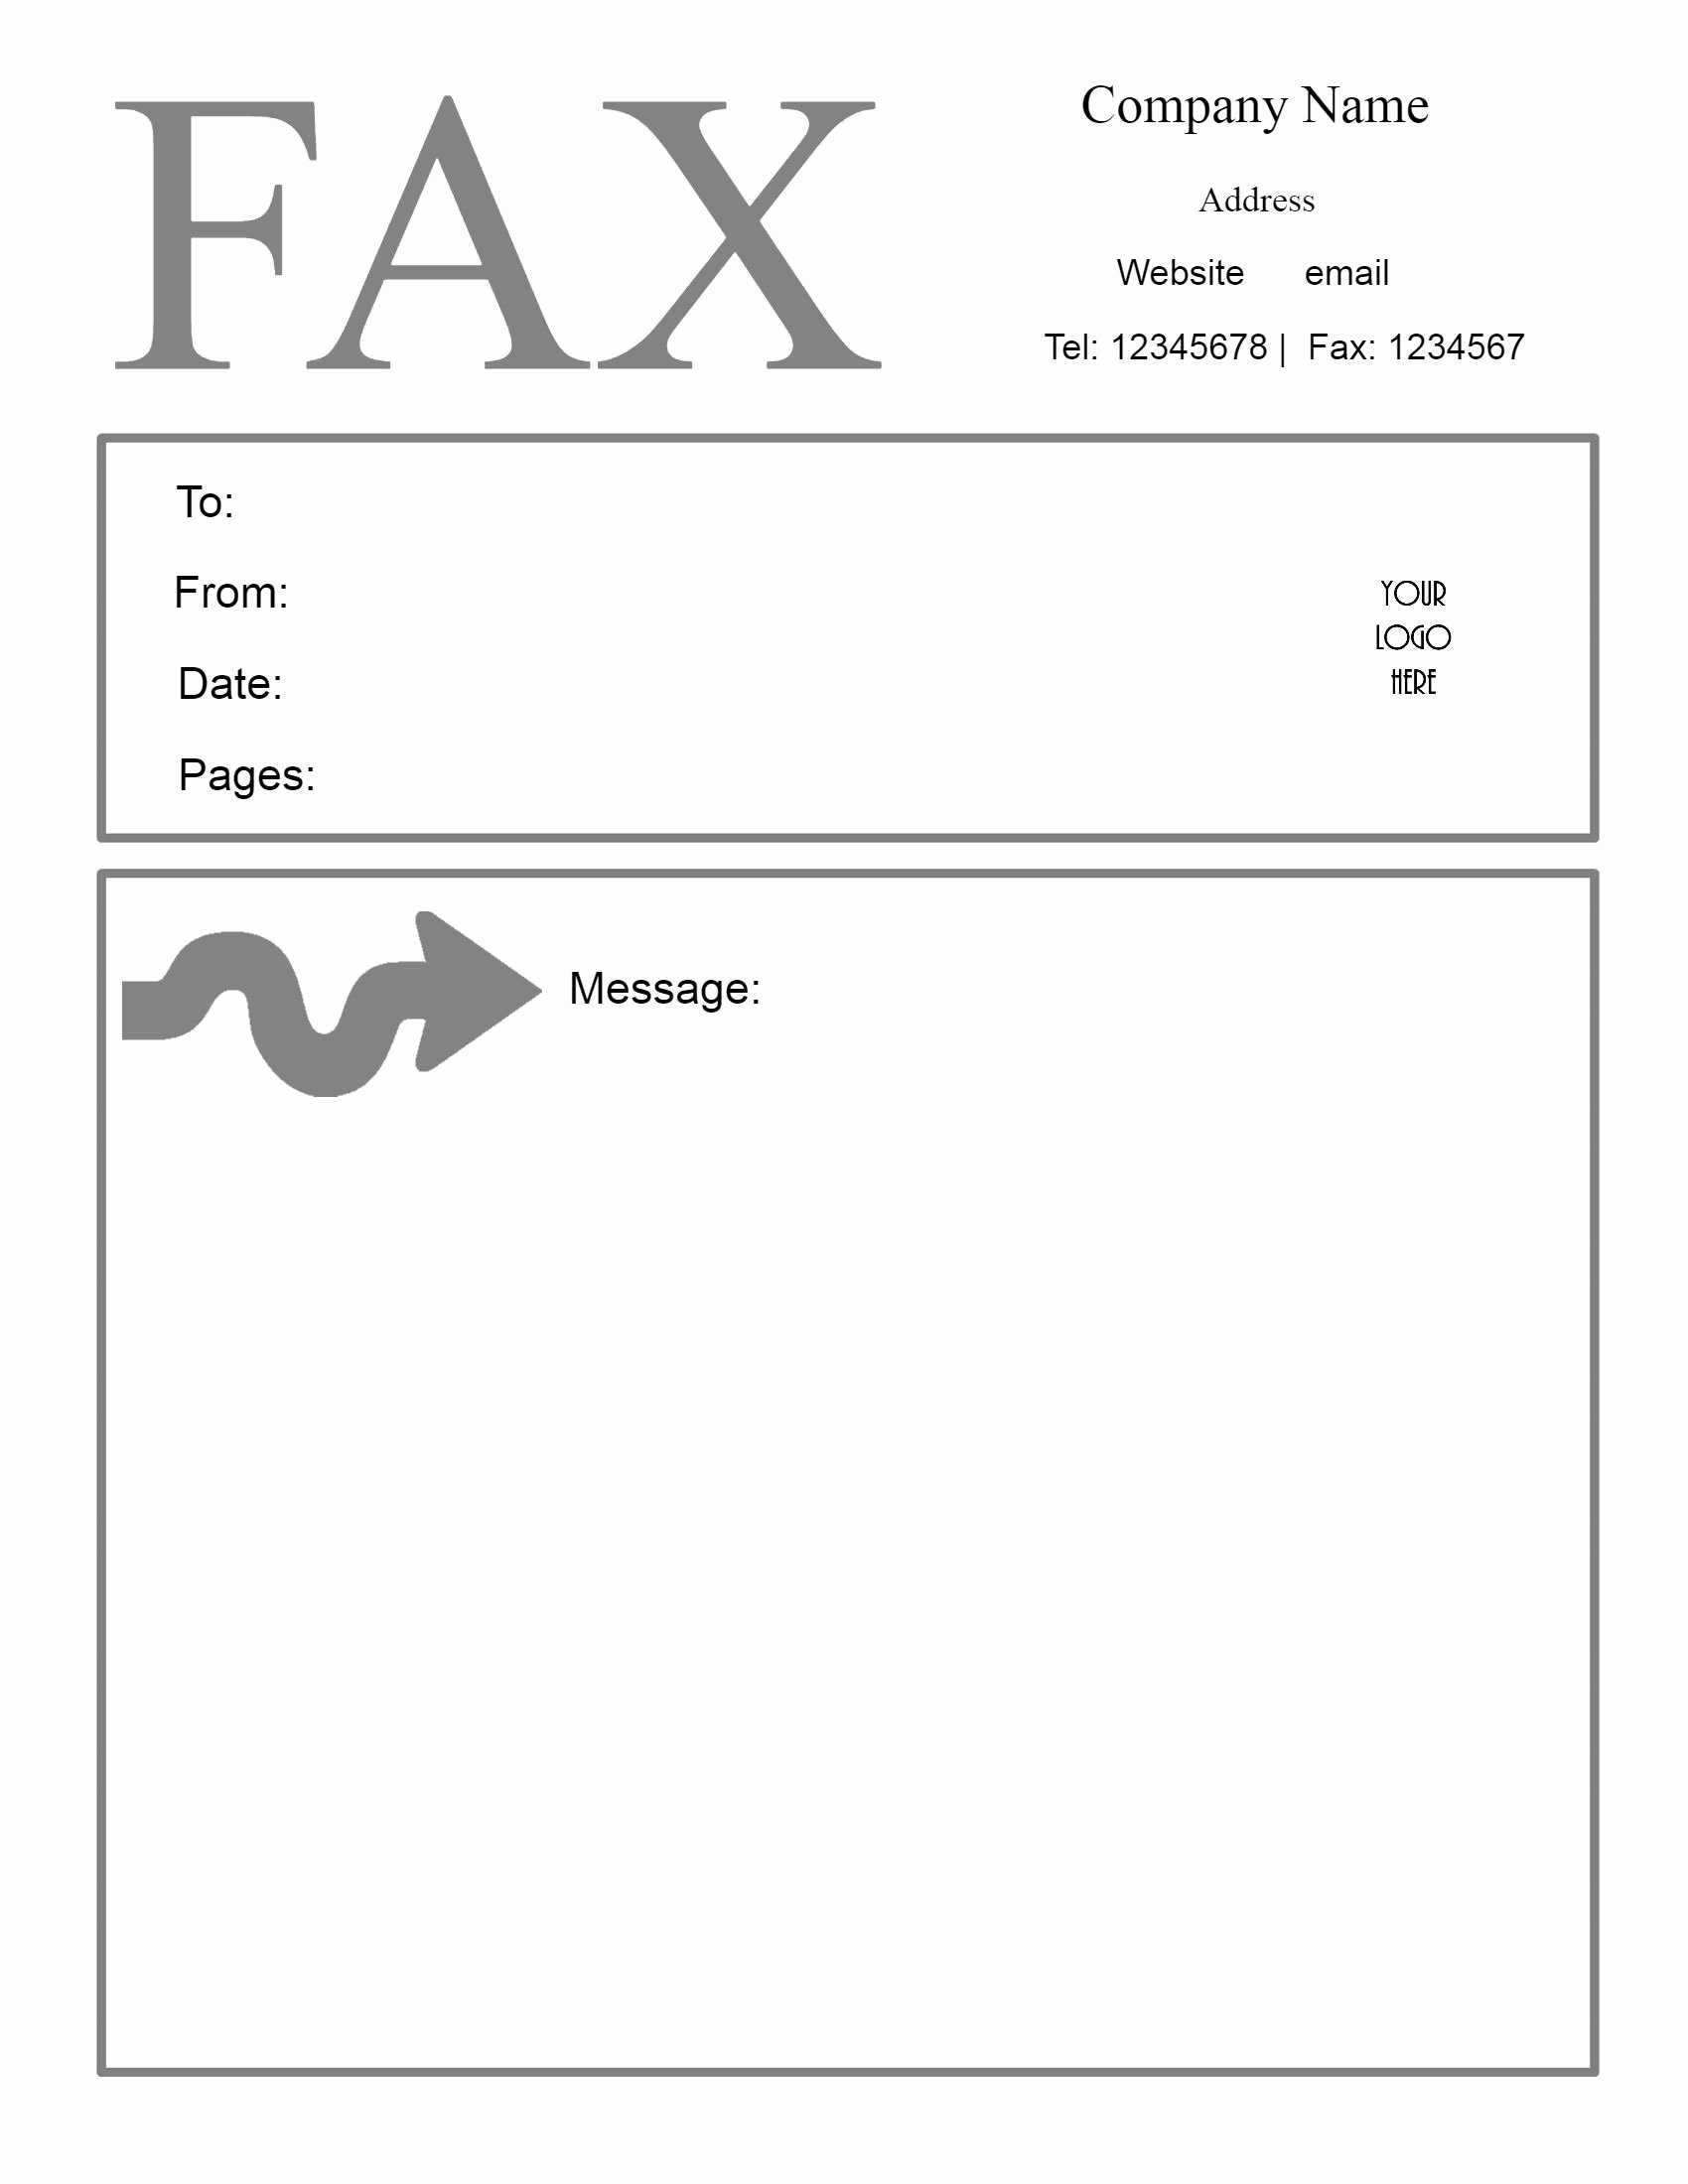 Fax Cover Sheet Template Free Lovely Free Fax Cover Sheet Template